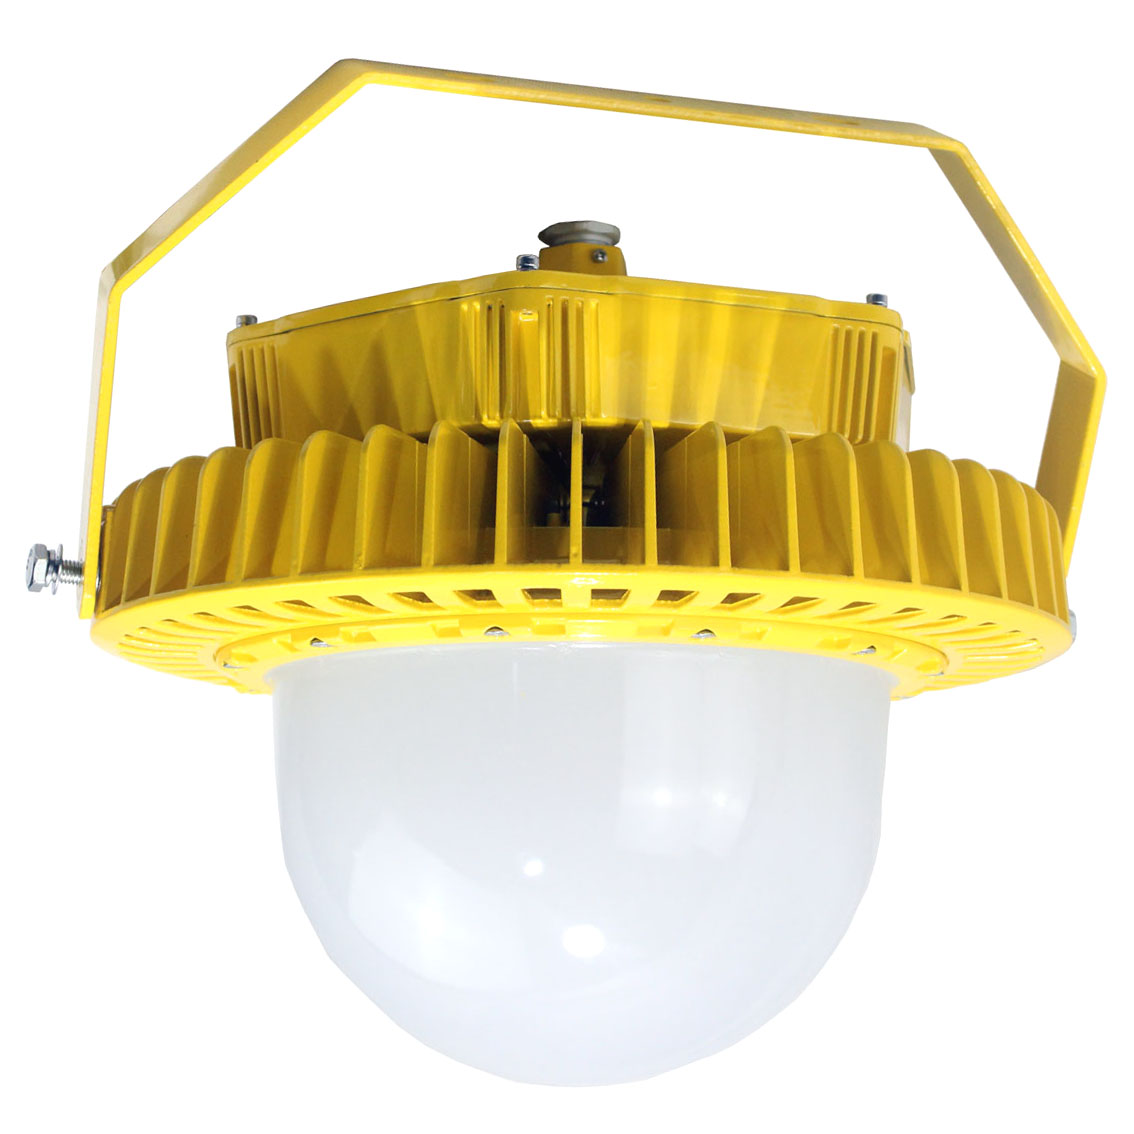 MAXL-5150F,5200F,5230F 150W,200W,230W Explosion Proof Platform Light